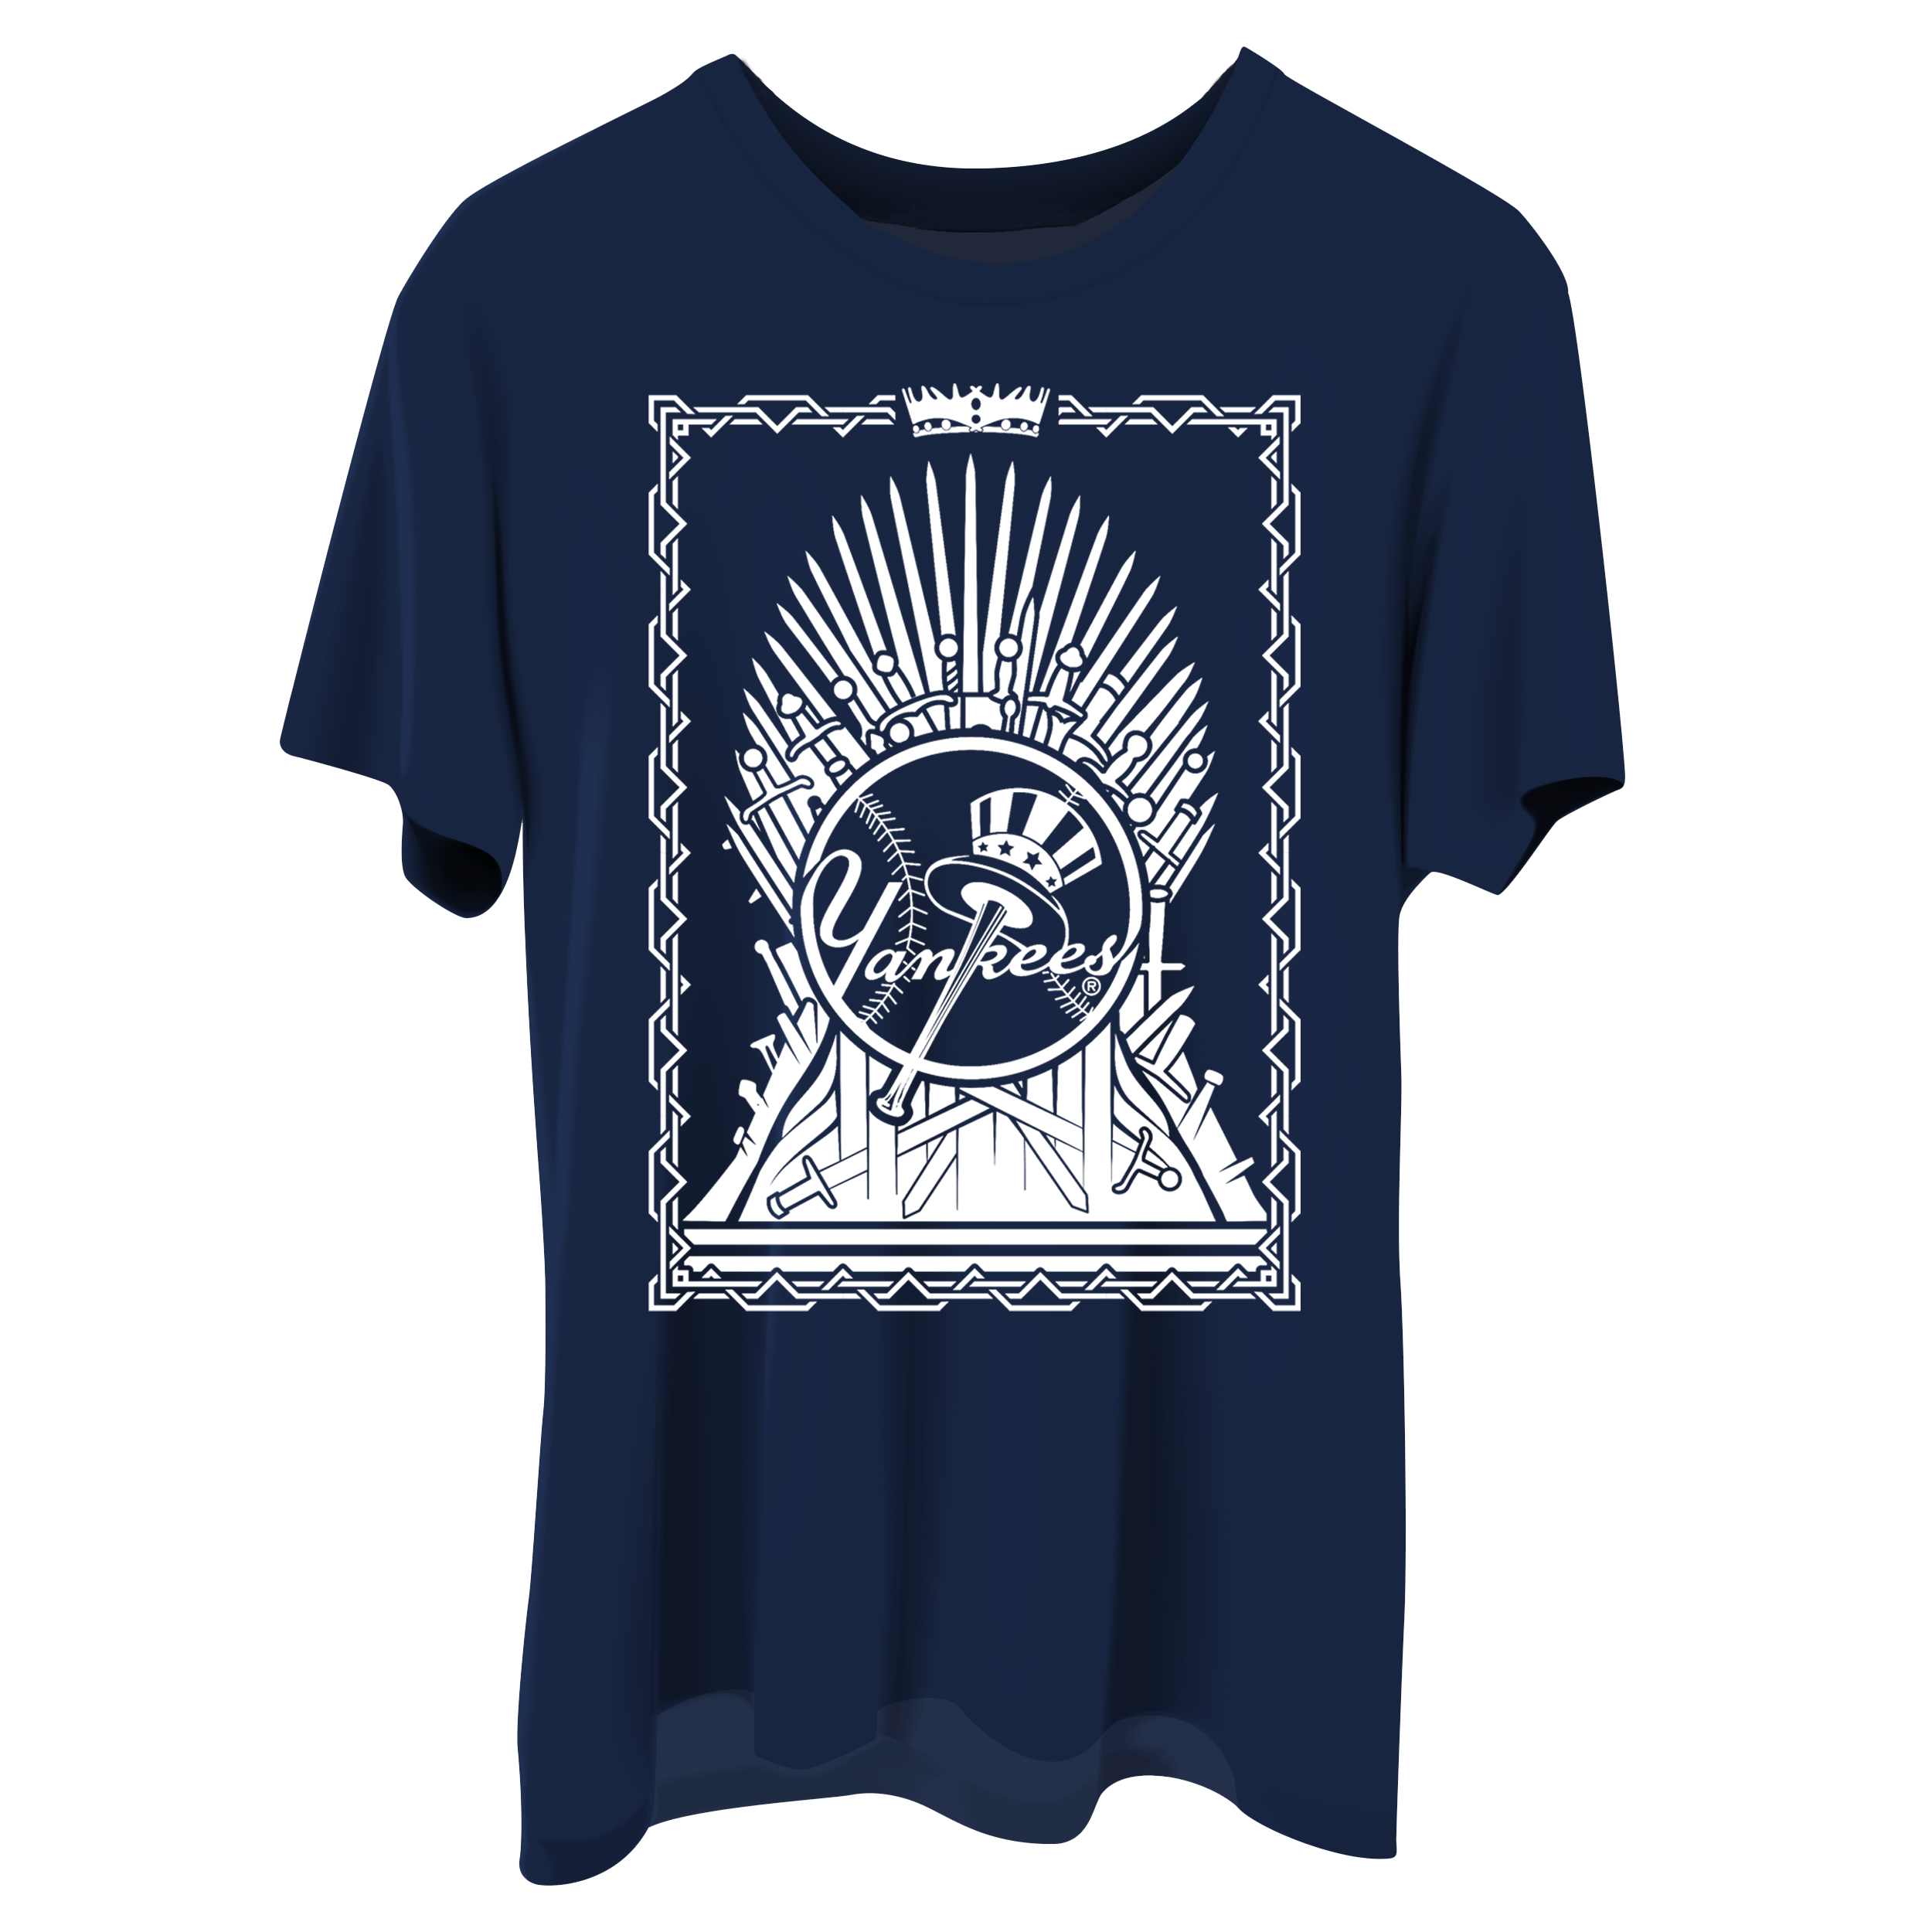 f53731a1b Game of Thrones® Night - Yankees Game of Thrones® T-shirt